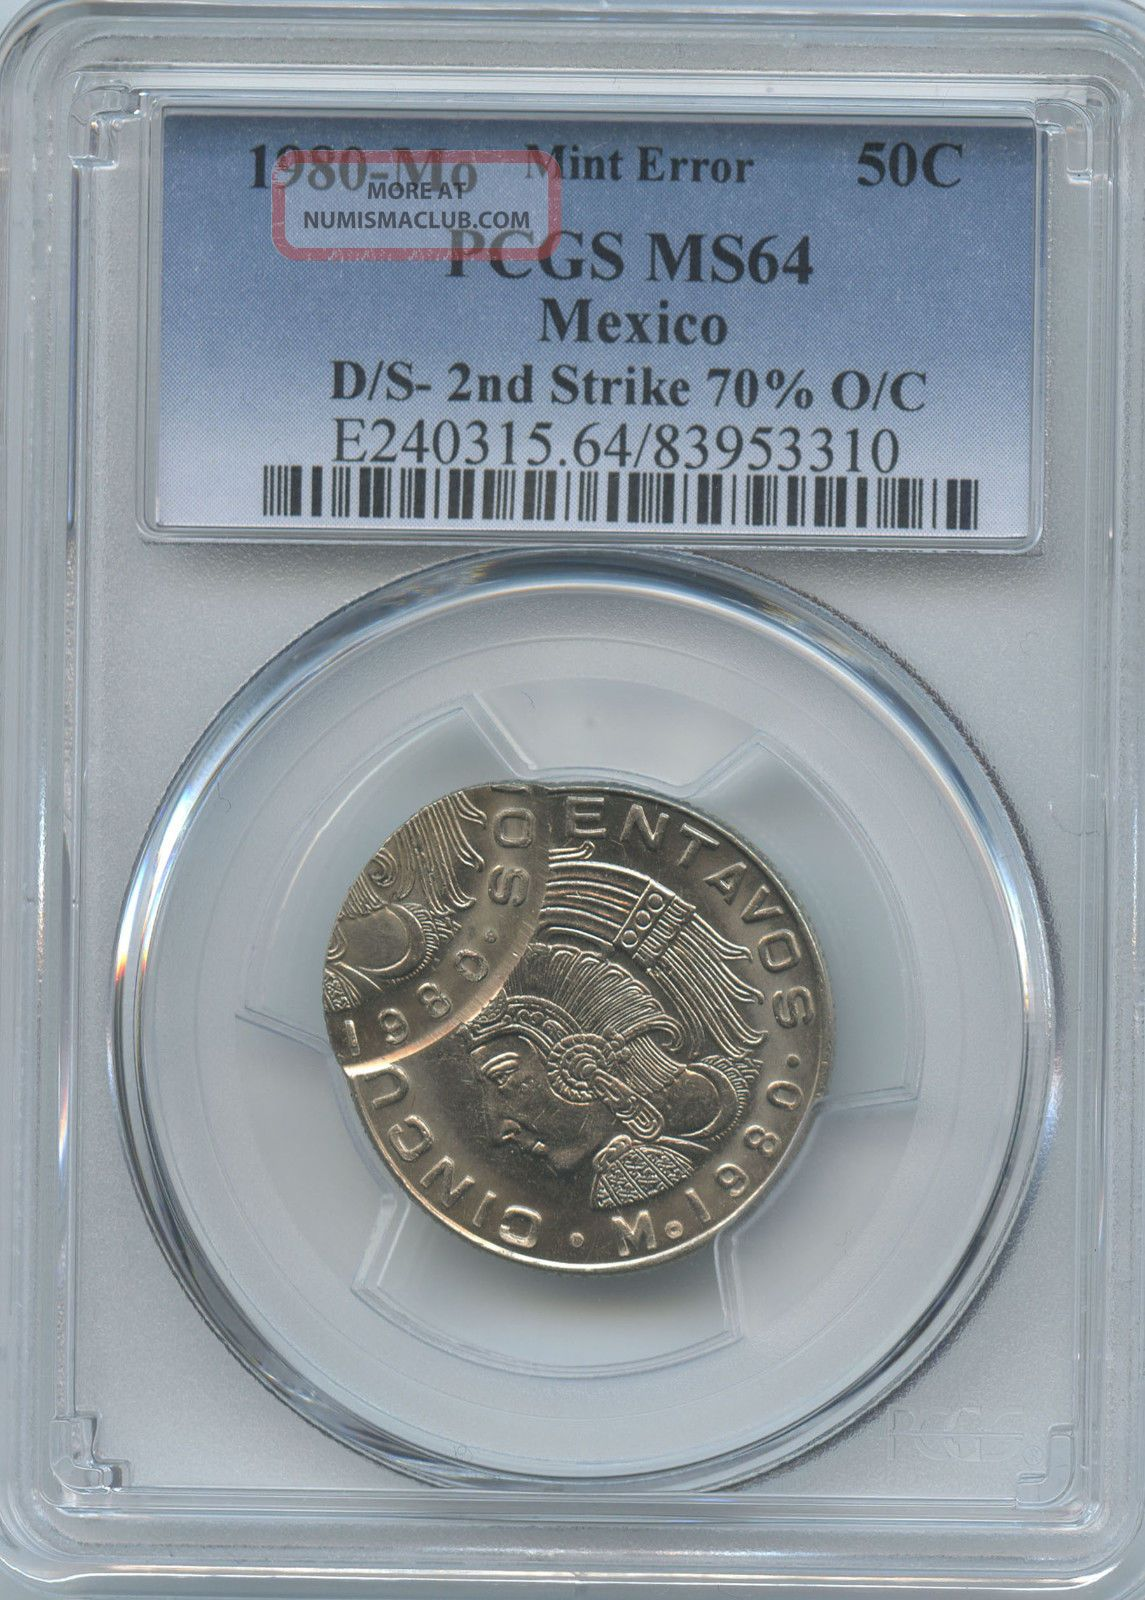 1980 Mexico 50c Double Struck Pcgs Ms - 64 Coins: World photo